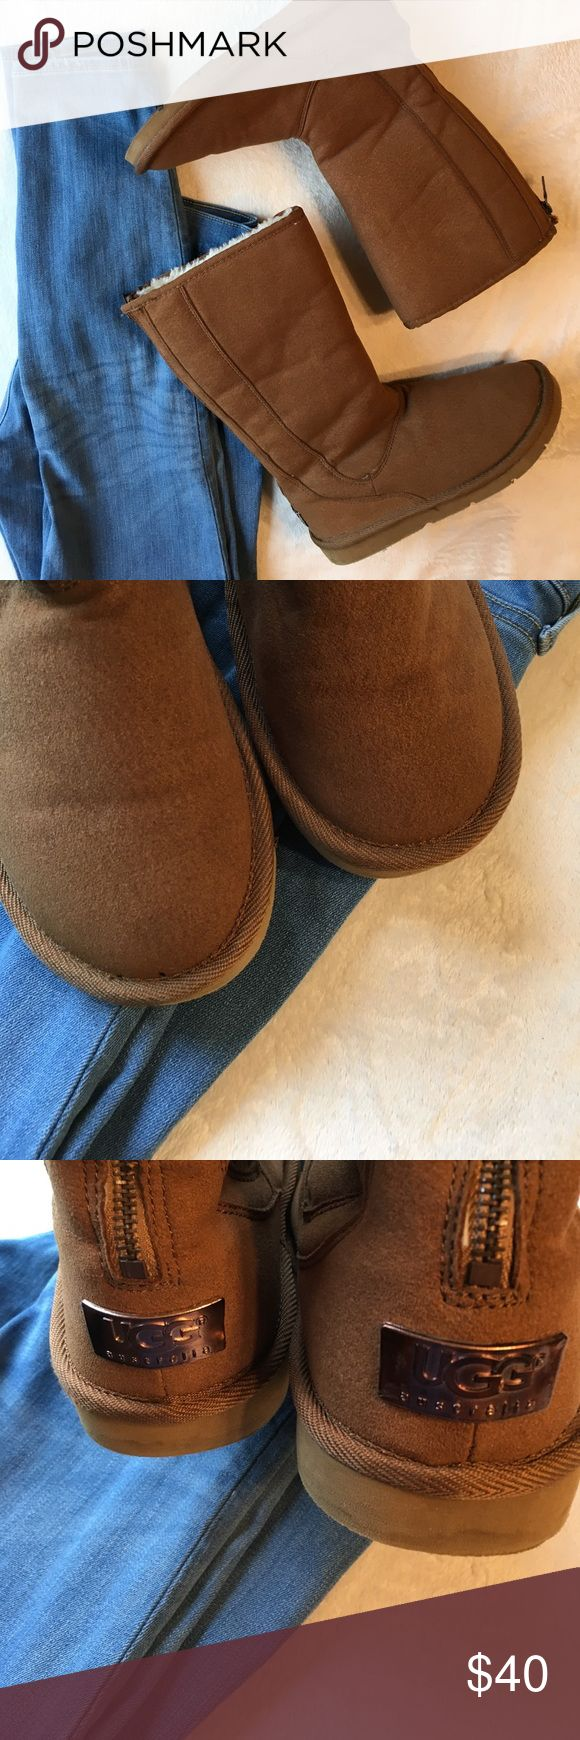 Uggs Size 7 Ugg Australia Size 7 Women's UGG Shoes Slippers